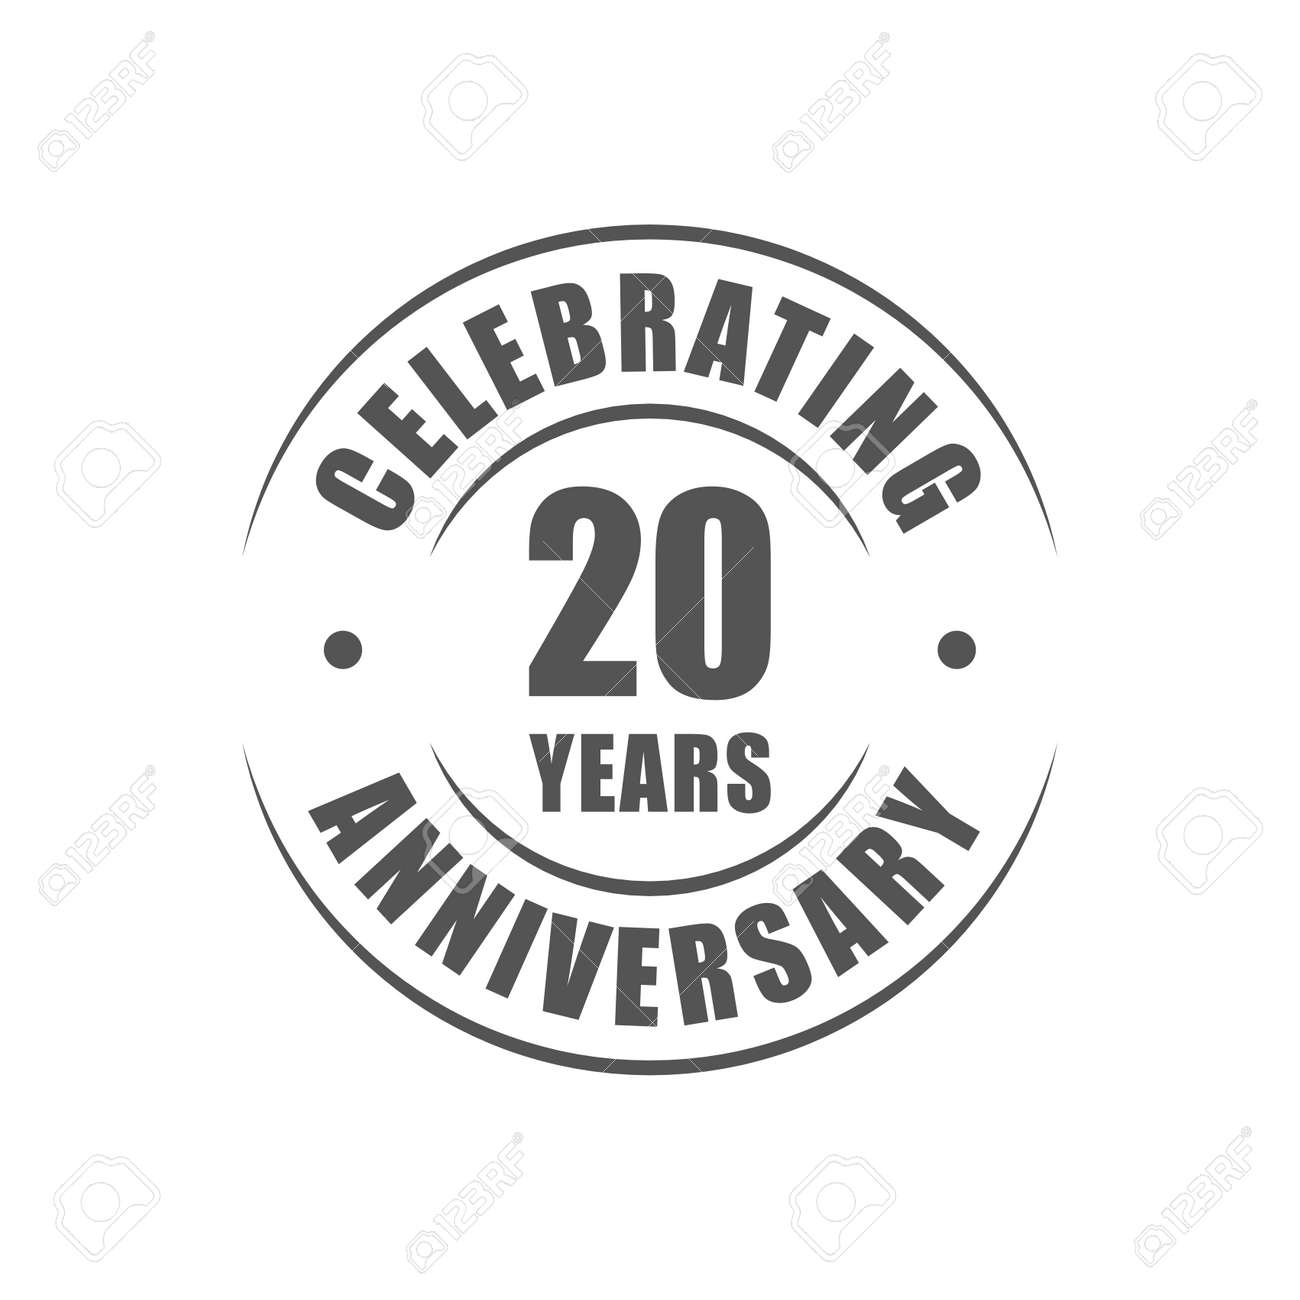 20 years celebrating anniversary logo royalty free cliparts vectors 20 years celebrating anniversary logo stock vector 64660662 altavistaventures Image collections